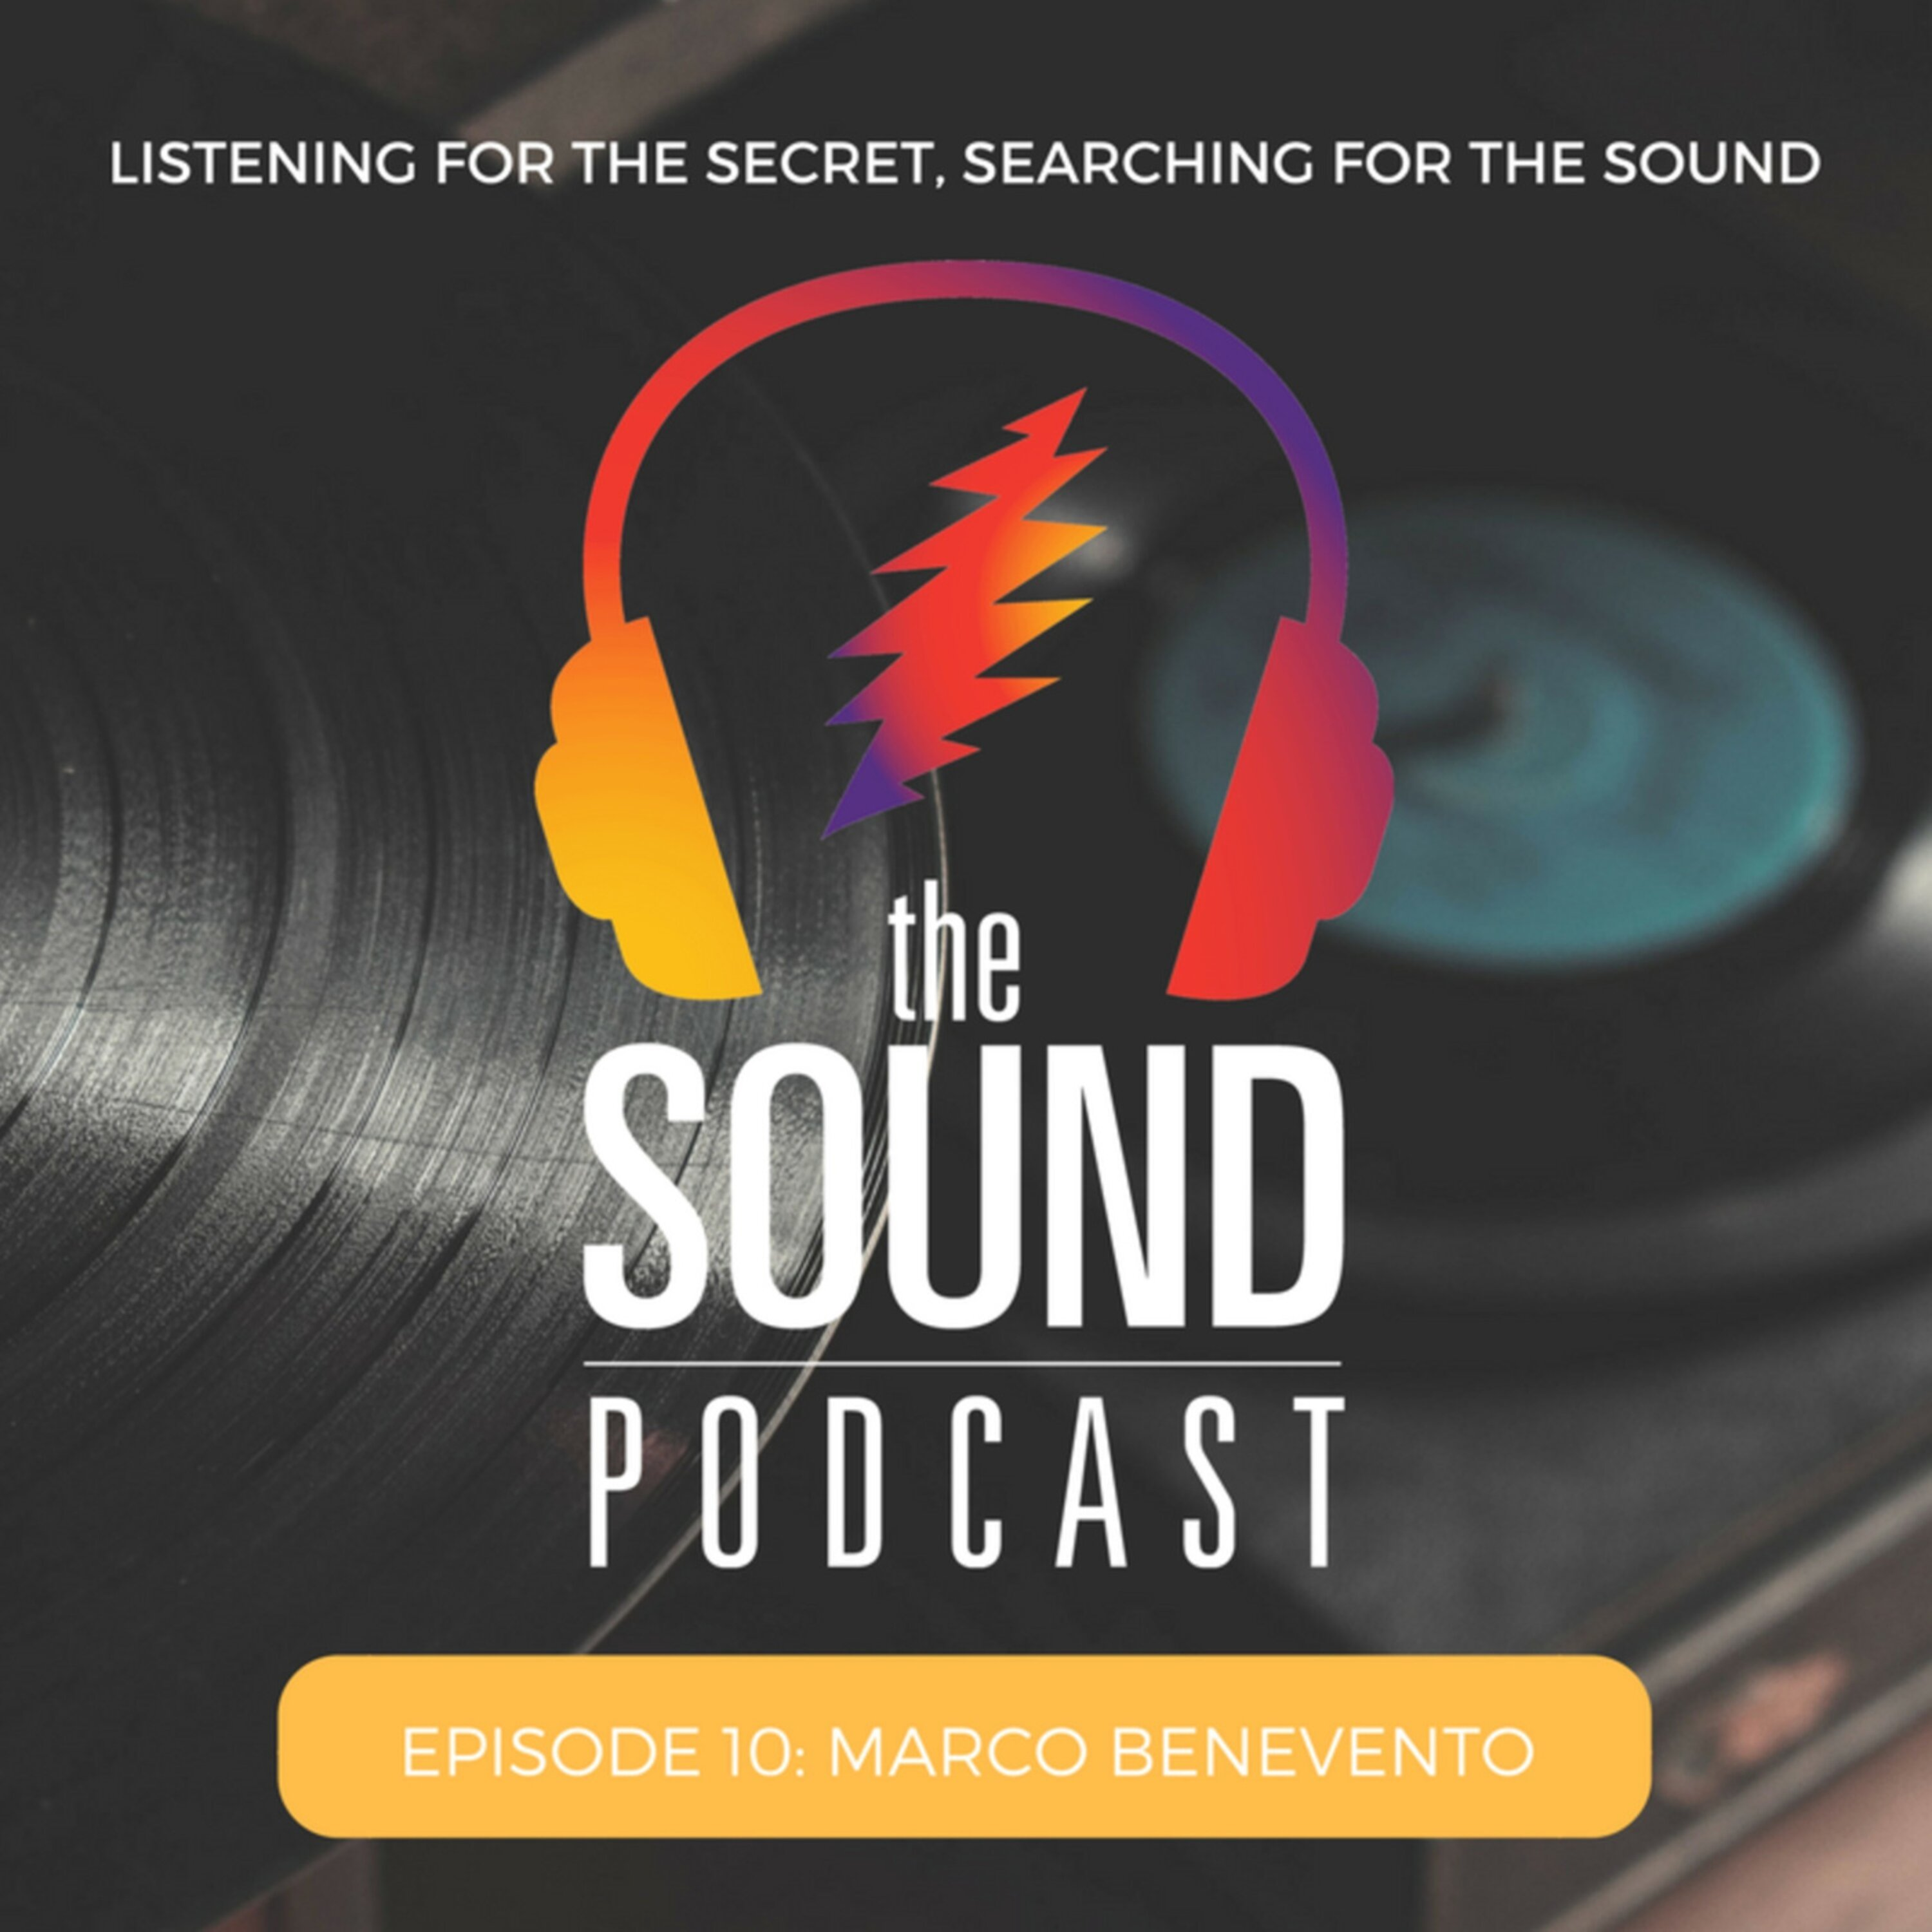 Episode 10: Marco Benevento